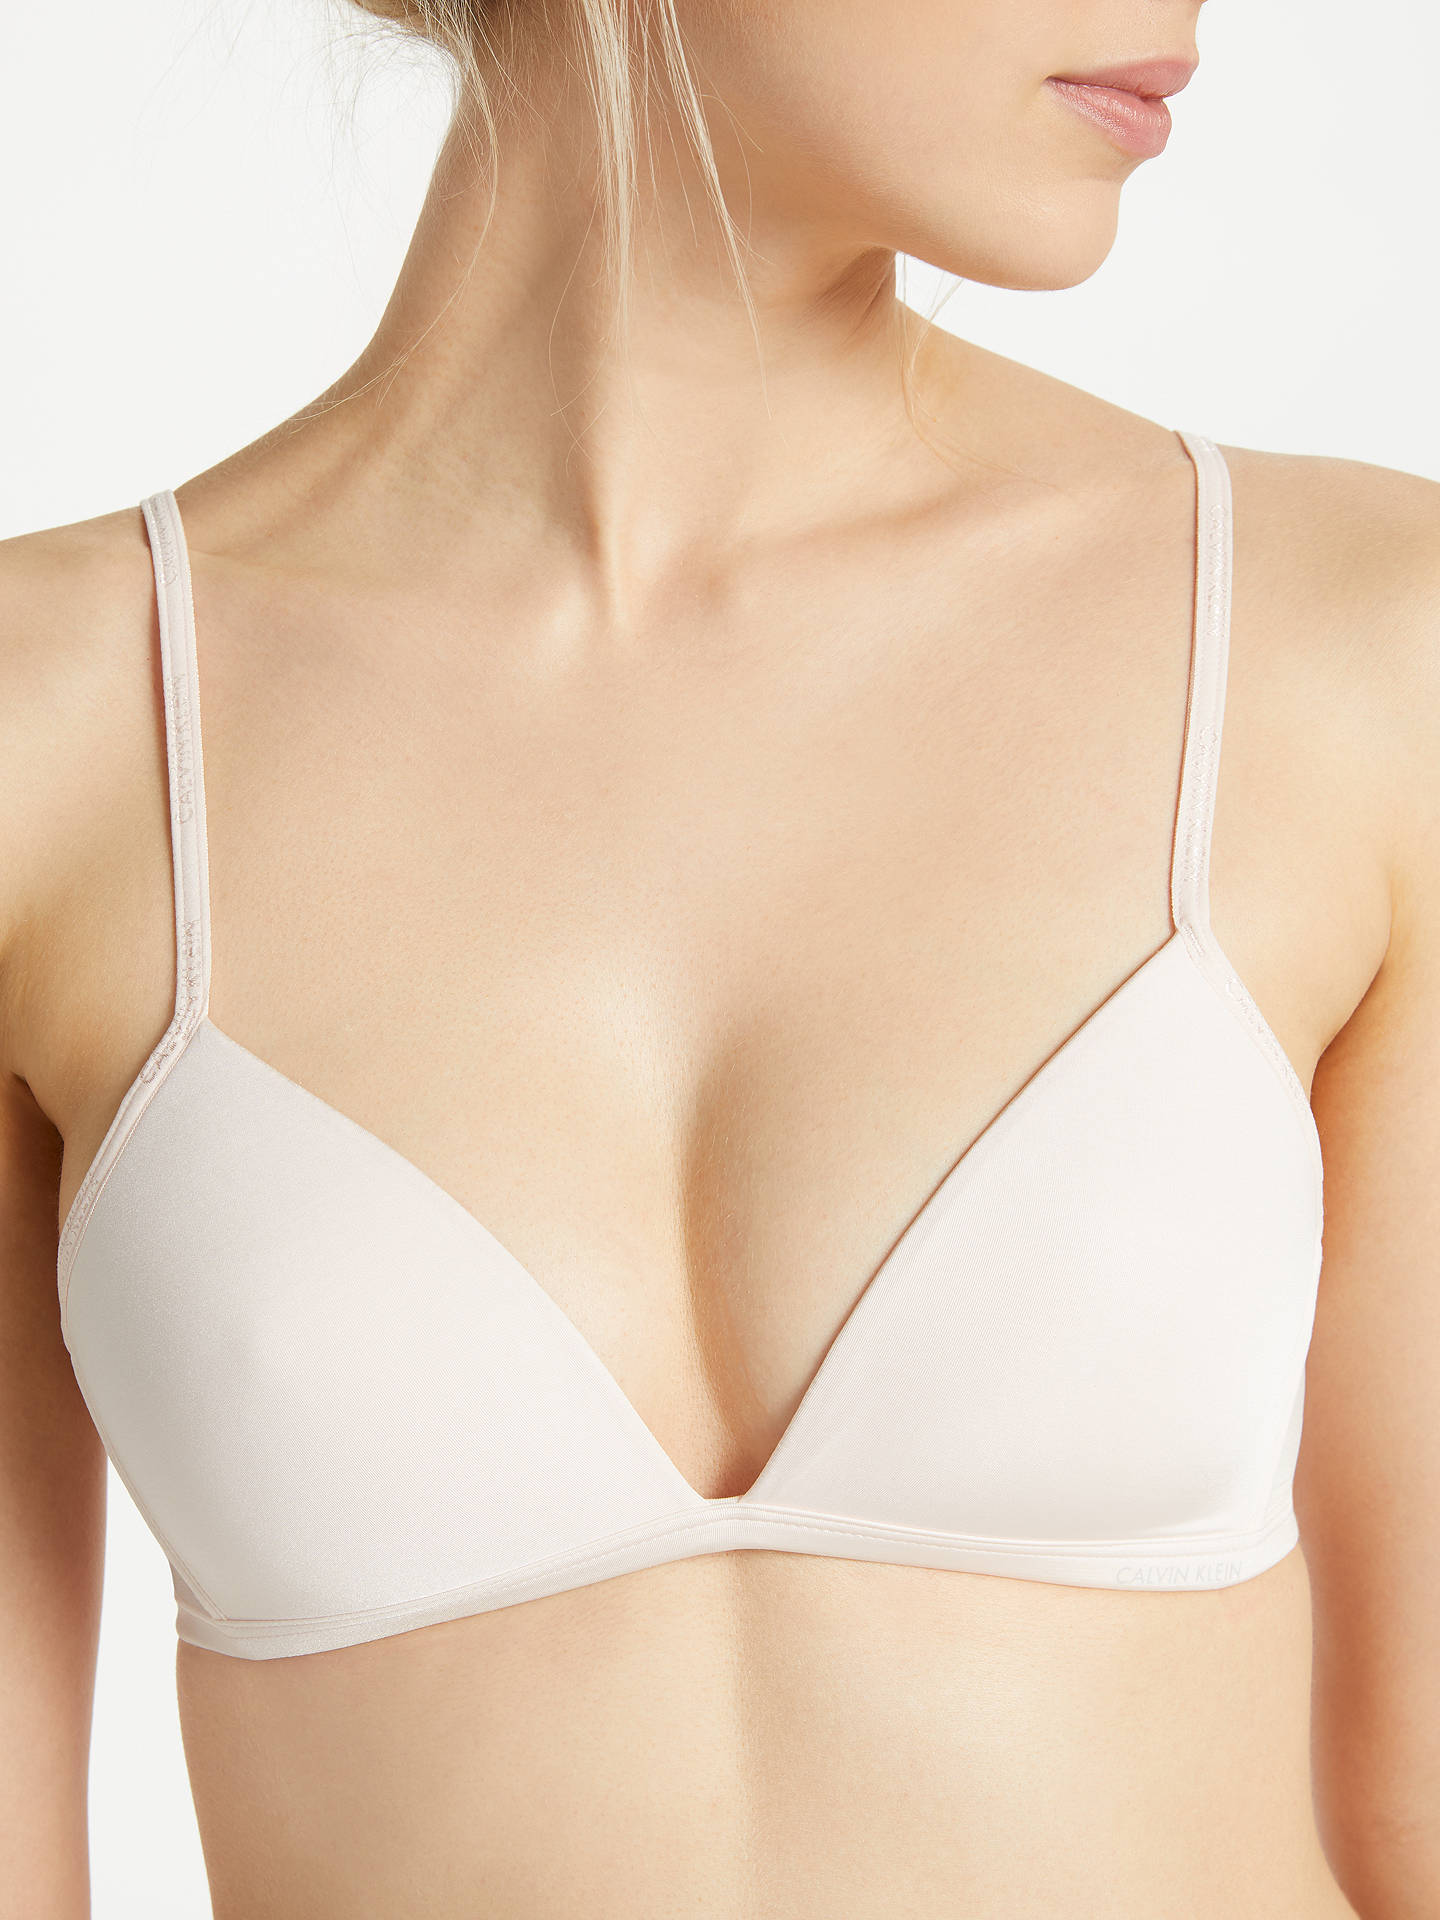 76239f0901 Buy Calvin Klein Underwear Youthful Lined Triangle Bra